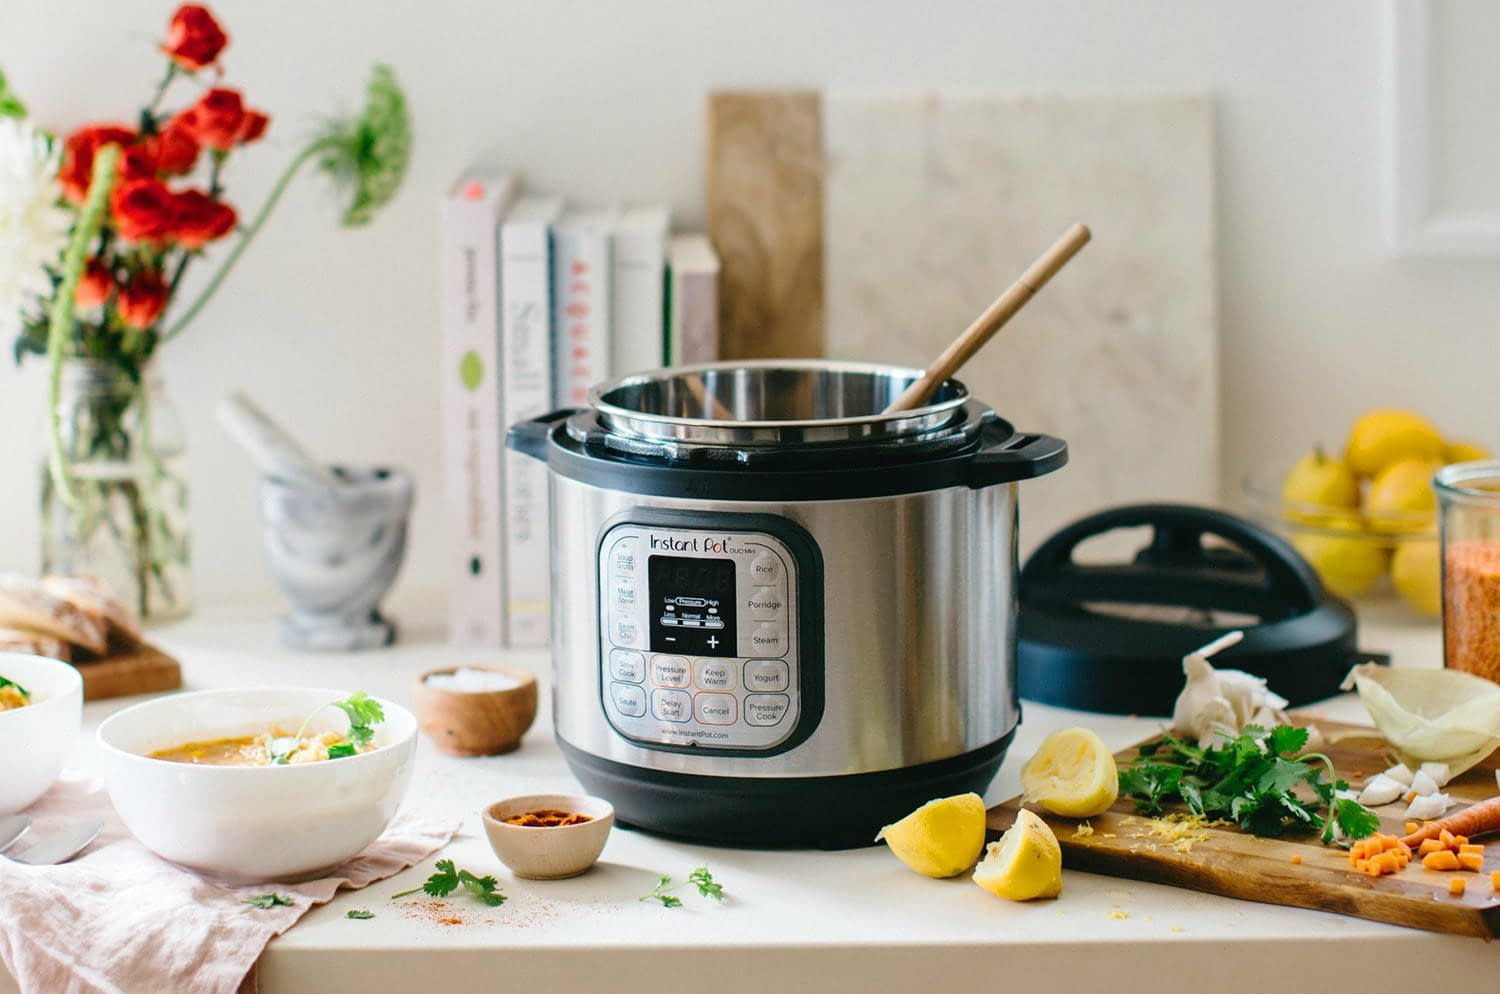 How Long Does Instant Pot Take to Preheat 1